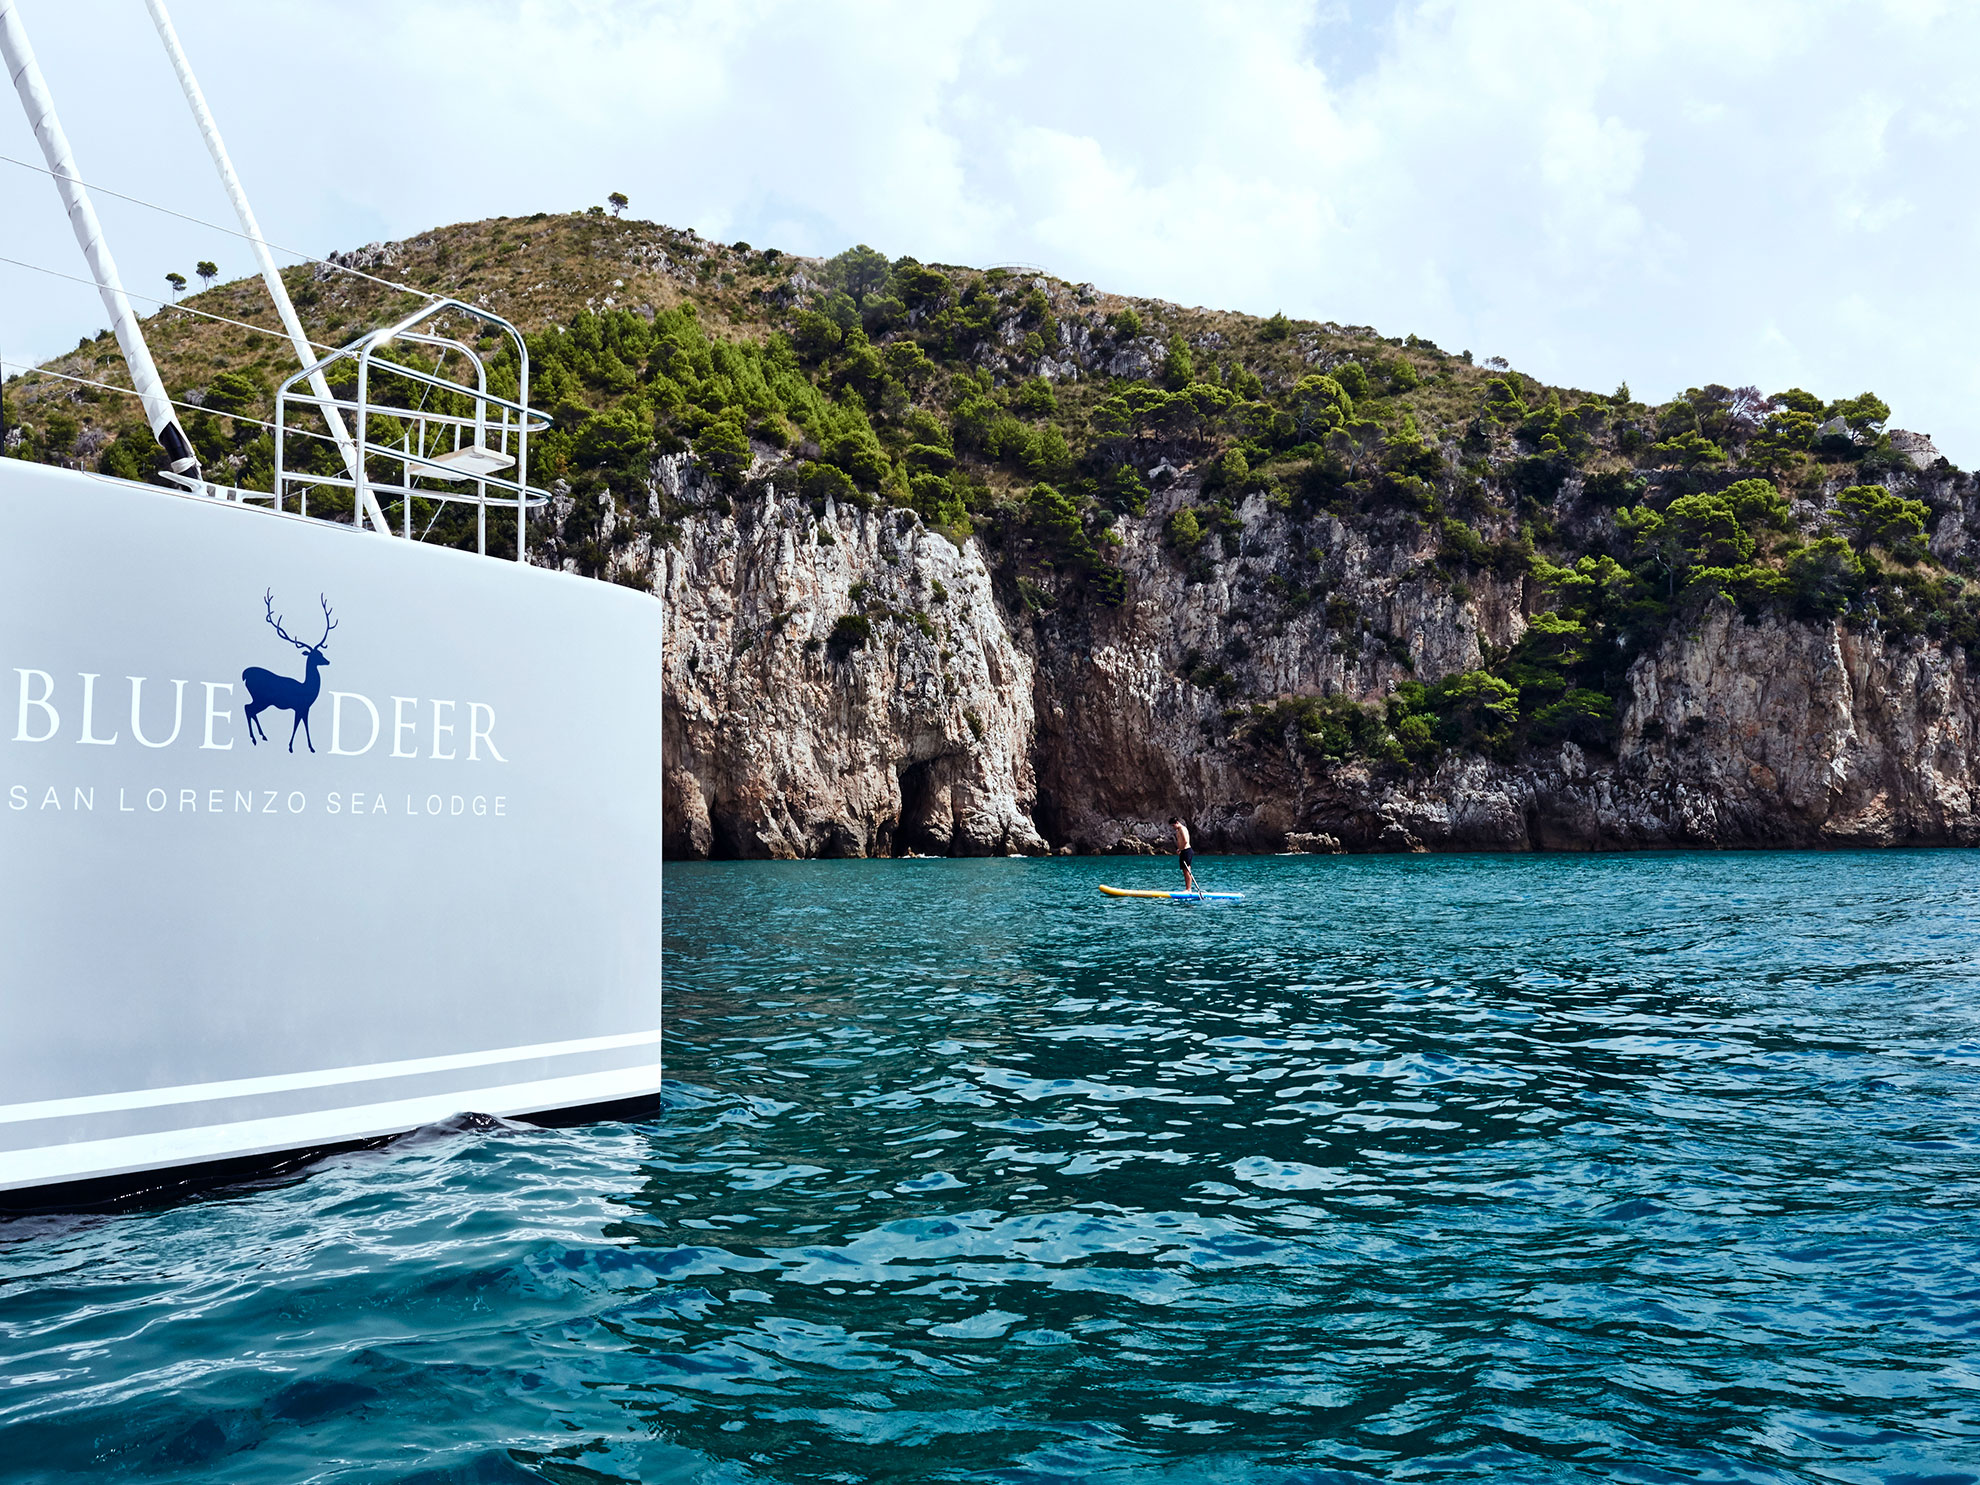 Catamaran Blue Deer